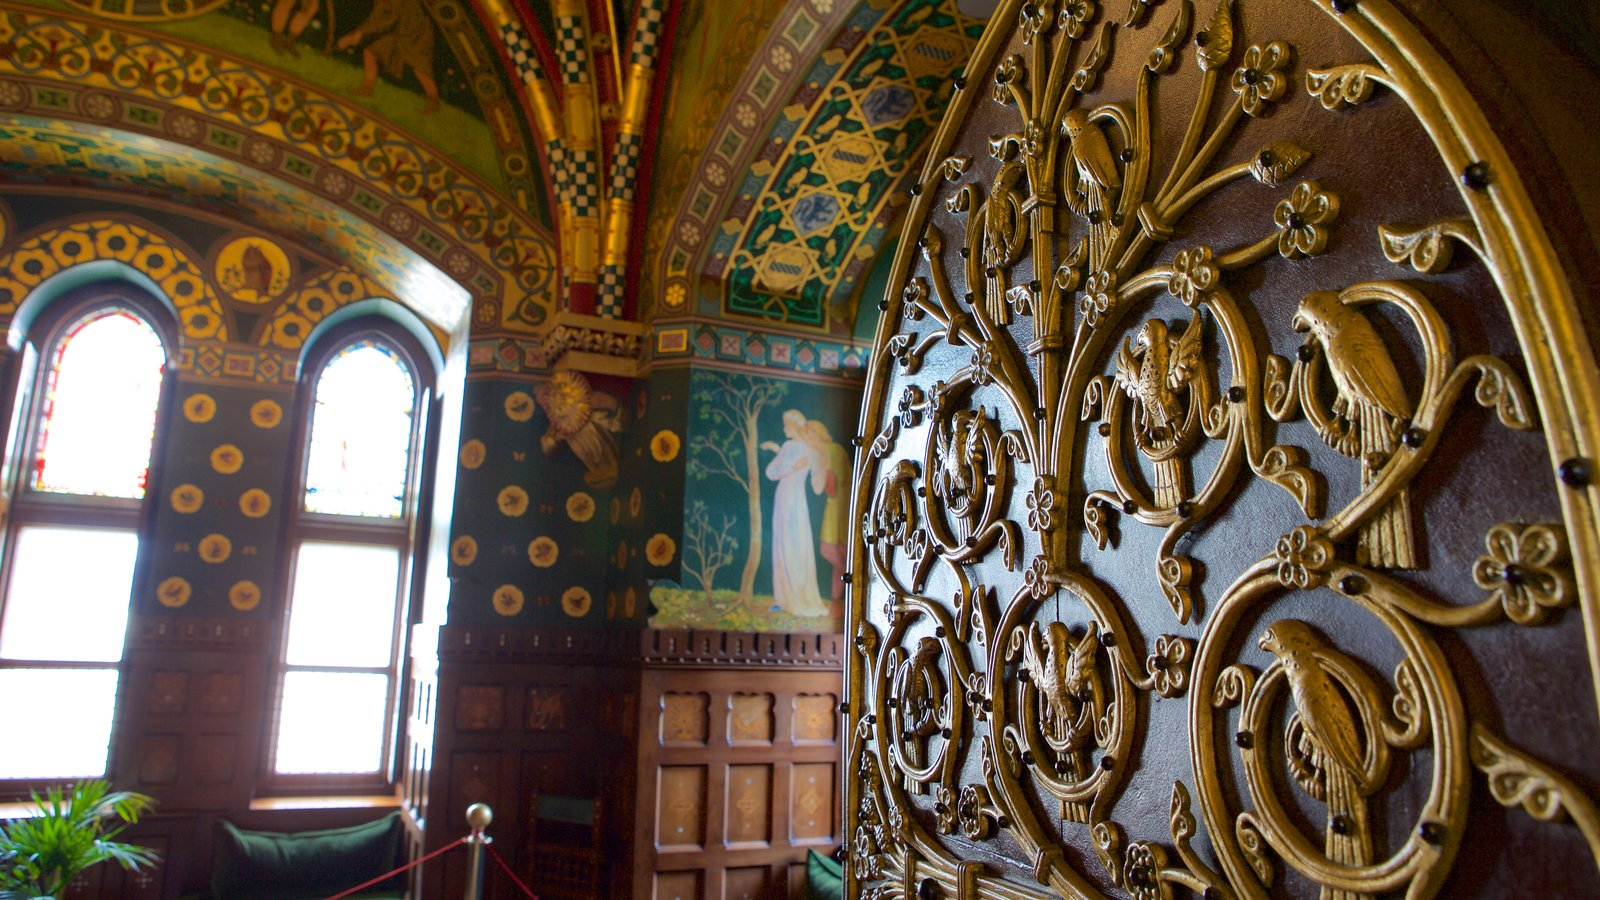 cardiff castle pictures: view photos & images of cardiff castle